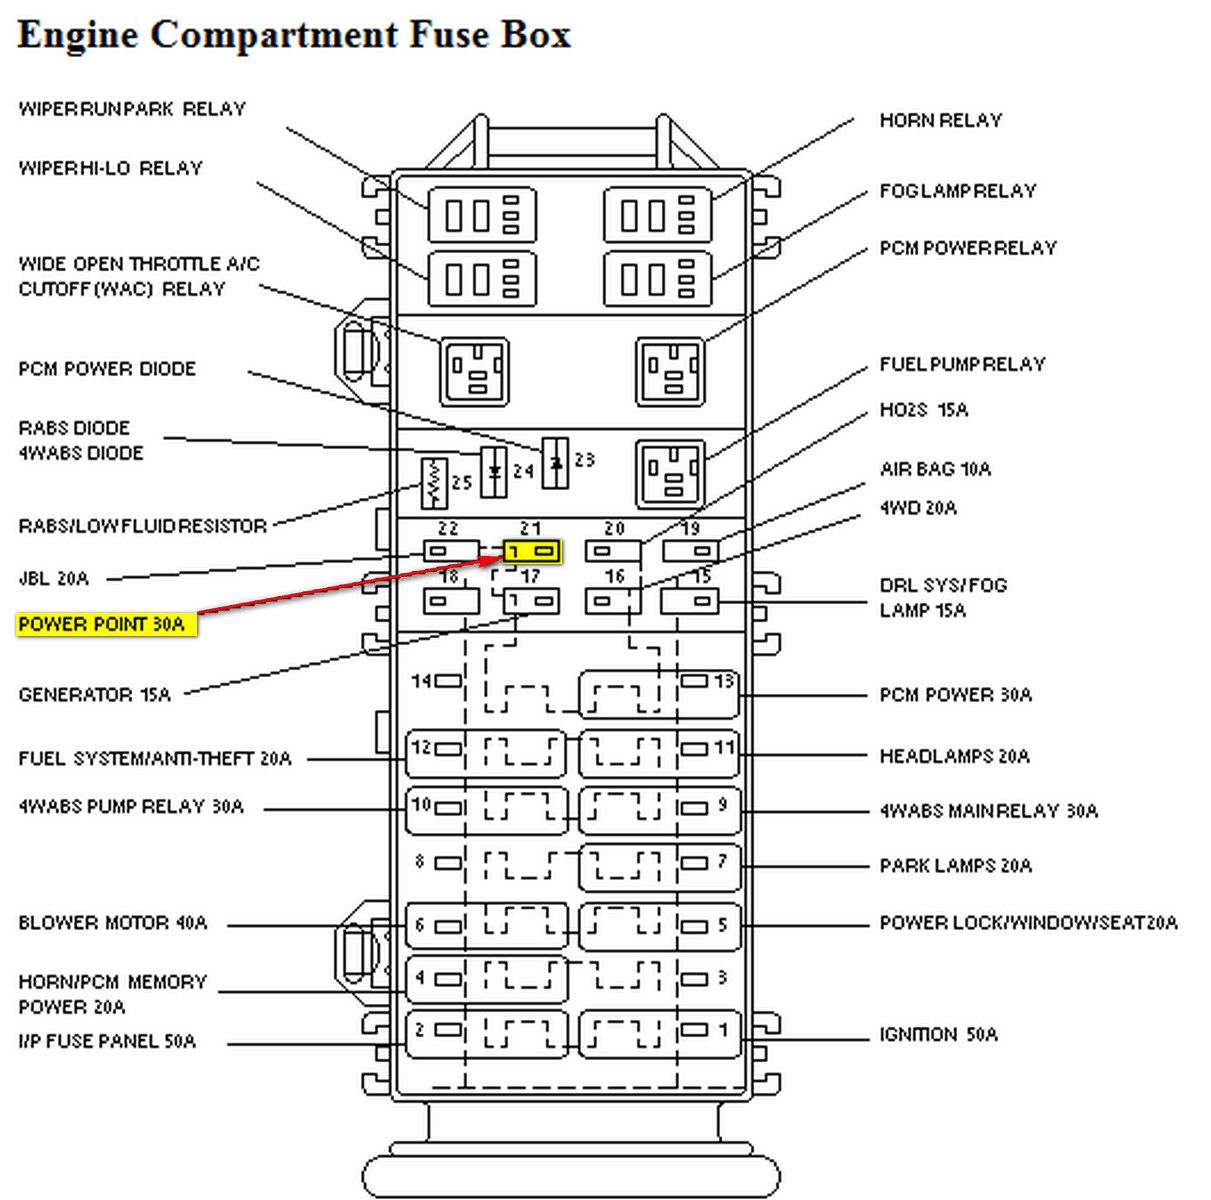 wrg 4838 2002 ford f 150 fx4 fuse panel diagram 94 lincoln town car fuse diagram [ 1211 x 1200 Pixel ]